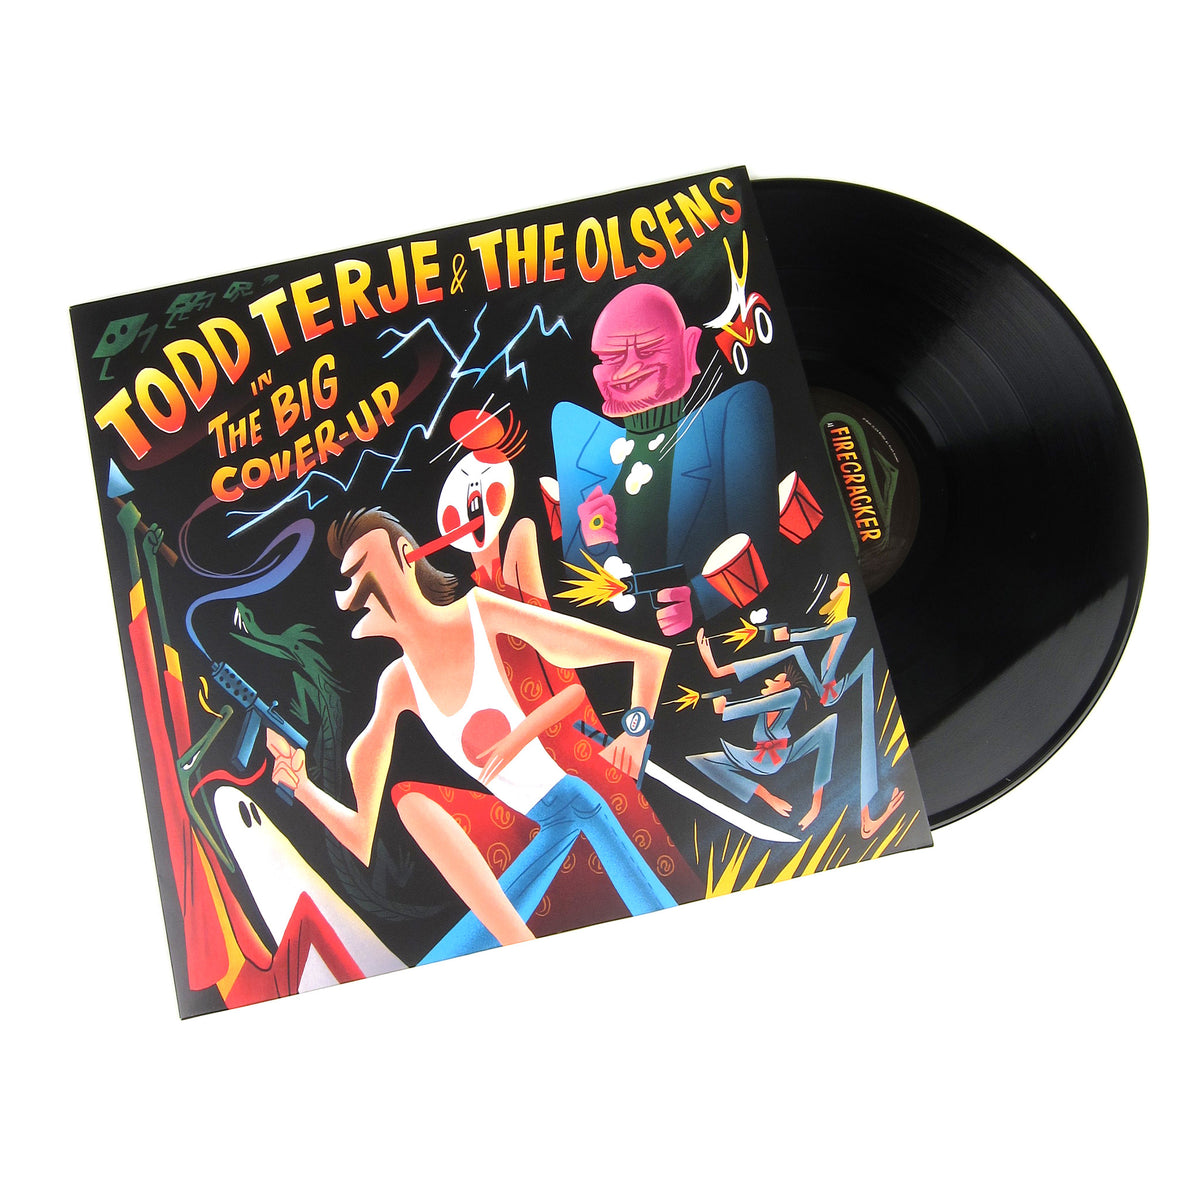 Todd Terje & The Olsens: The Big Cover-Up Vinyl 2LP